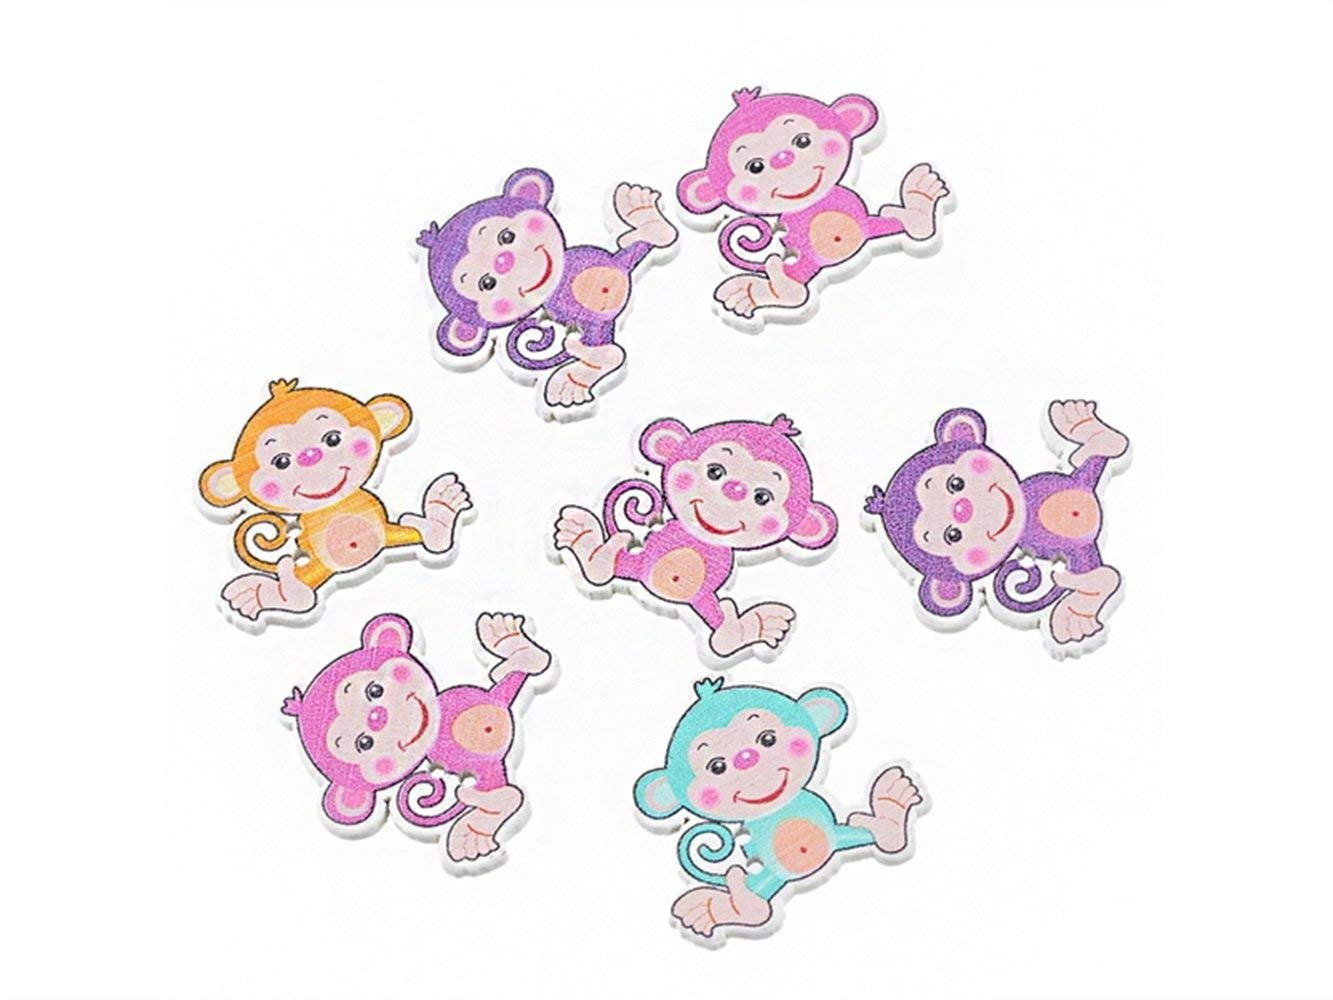 Yuchoi Perfectly Shaped Approx.30 Pcs Cute Monkey Shape Wooden Cartoon Buttons for Handmade (Colorful)